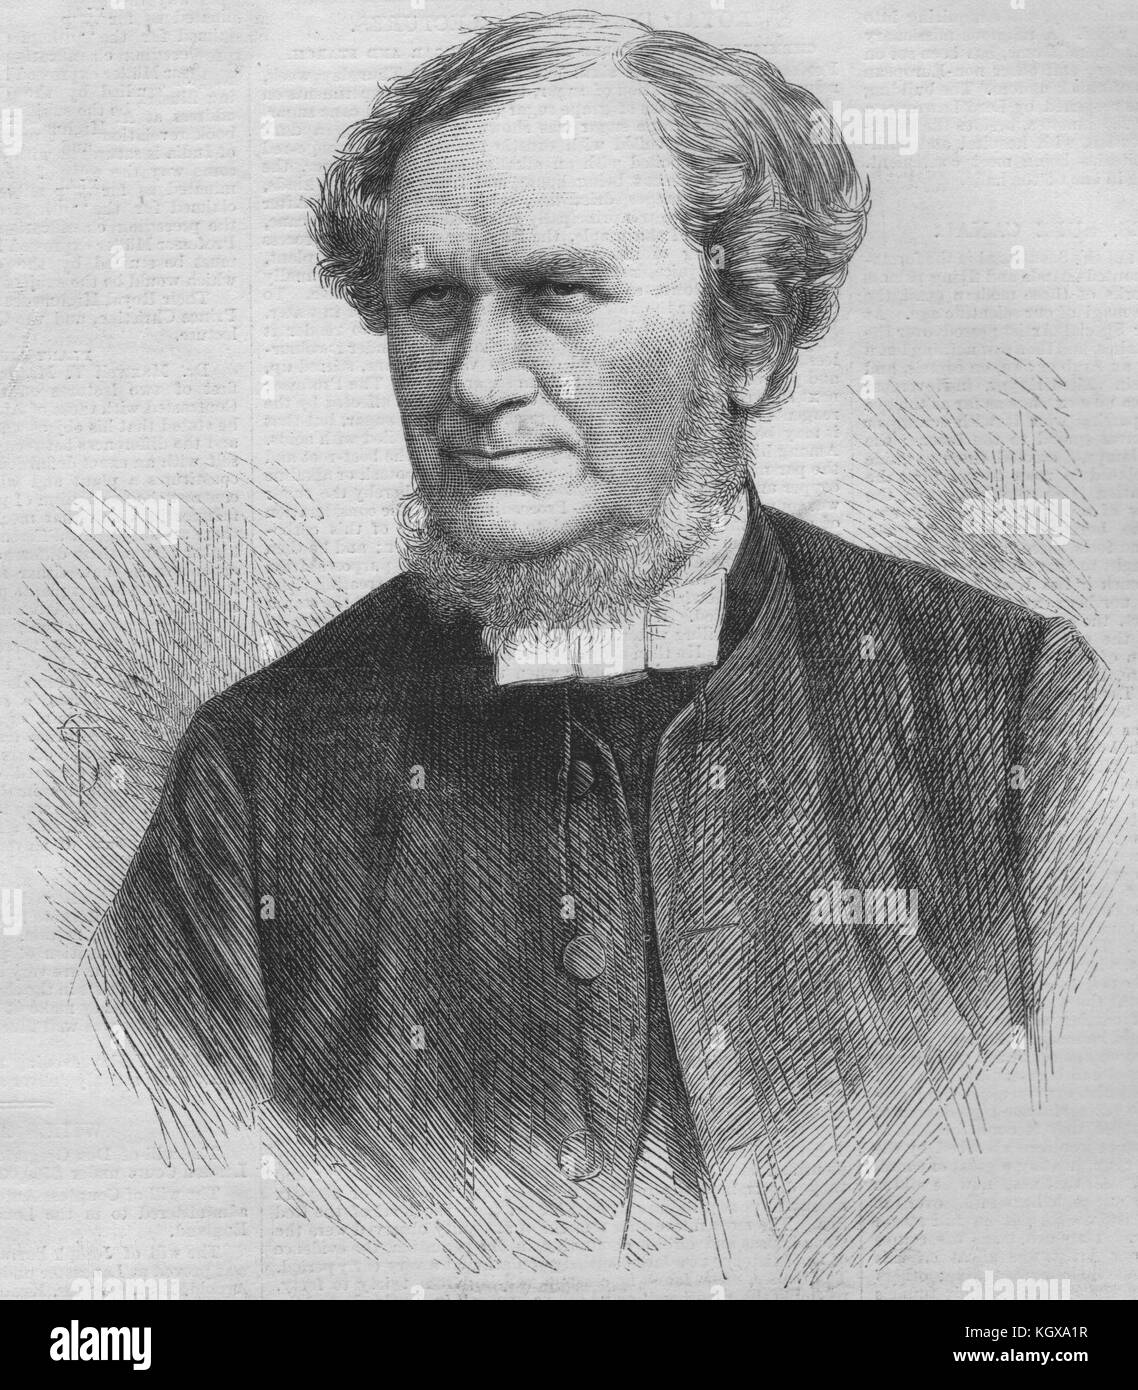 The Right Rev. Dr. Mackenzie, Suffragan Bishop of Nottingham 1870. The Illustrated London News - Stock Image